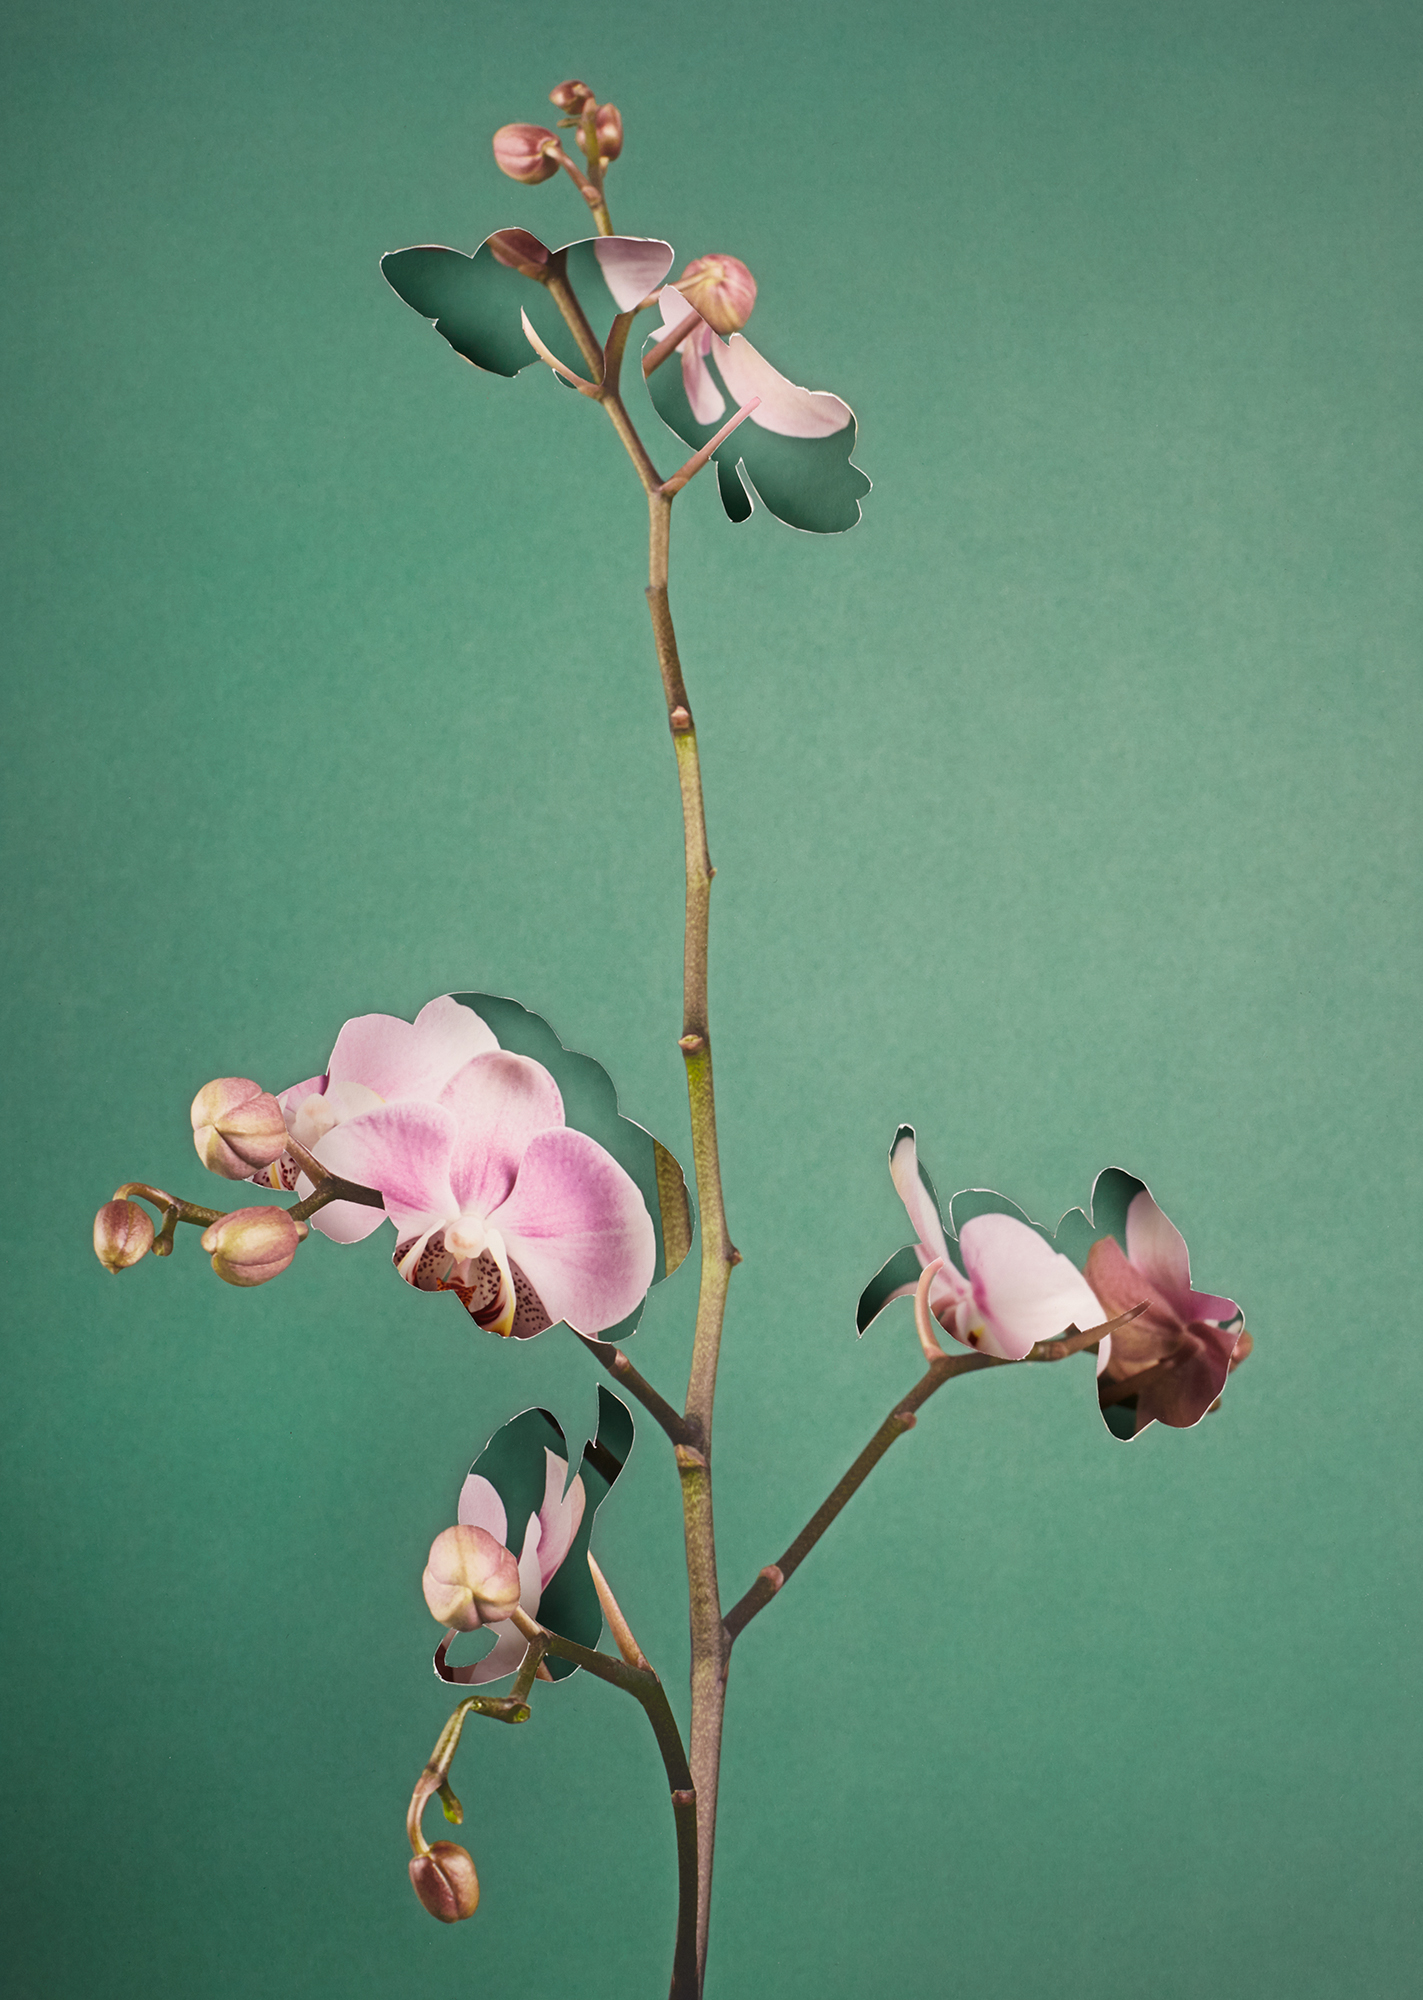 Alma Haser,  Phalaenopsis , 2018  Layered and cut digital pigment prints (2 layers), 47 x 35 cm total (approx. 18.5 x 13.75 in), edition of 7   Inquire